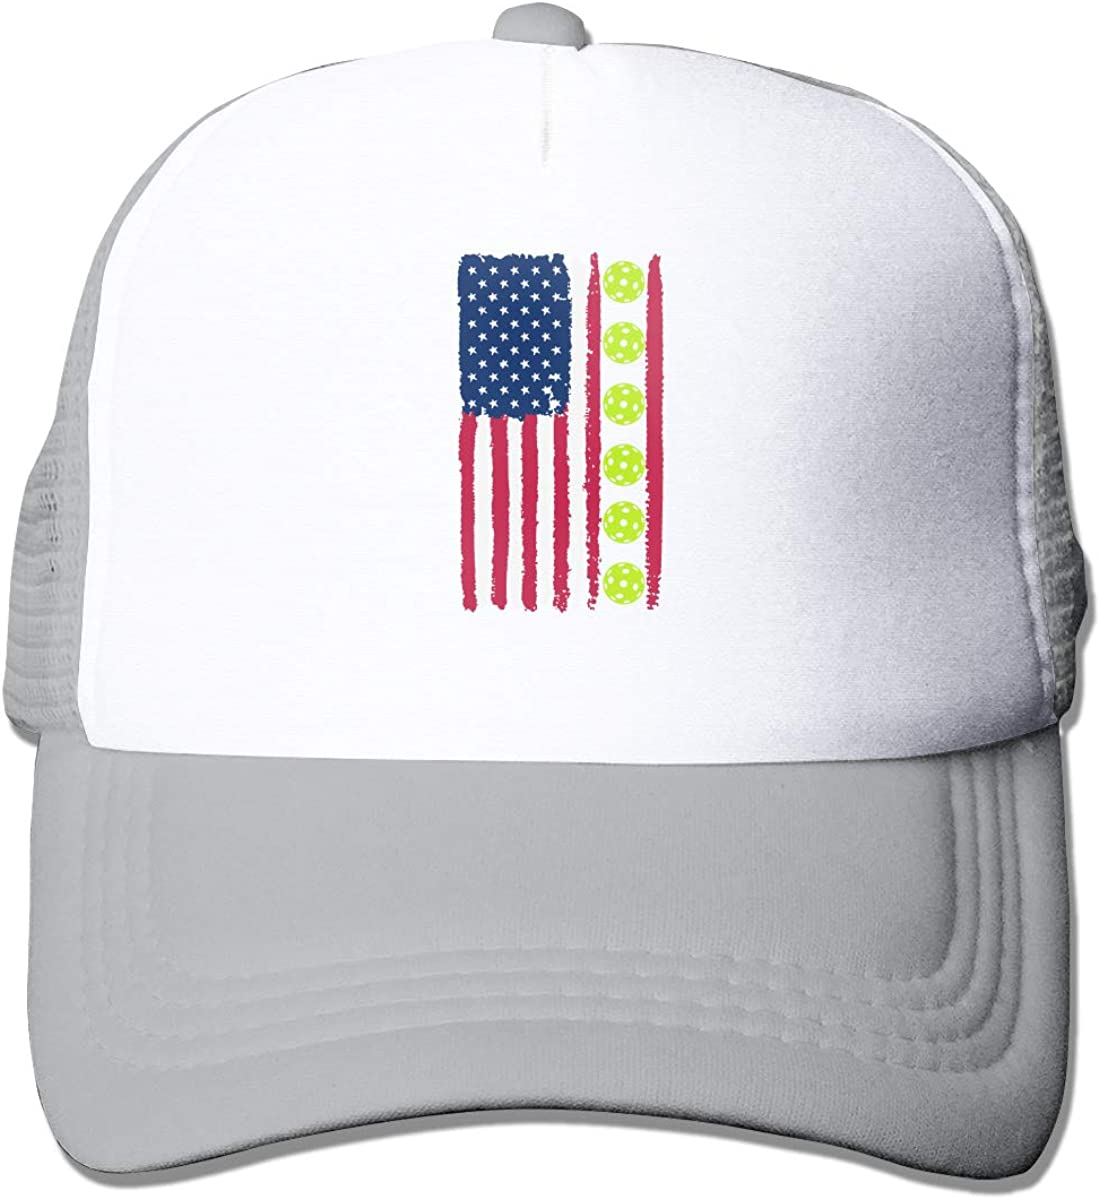 USA Flag Pickleball 2 Adult Mesh Cap Adjustable Baseball Cap Black